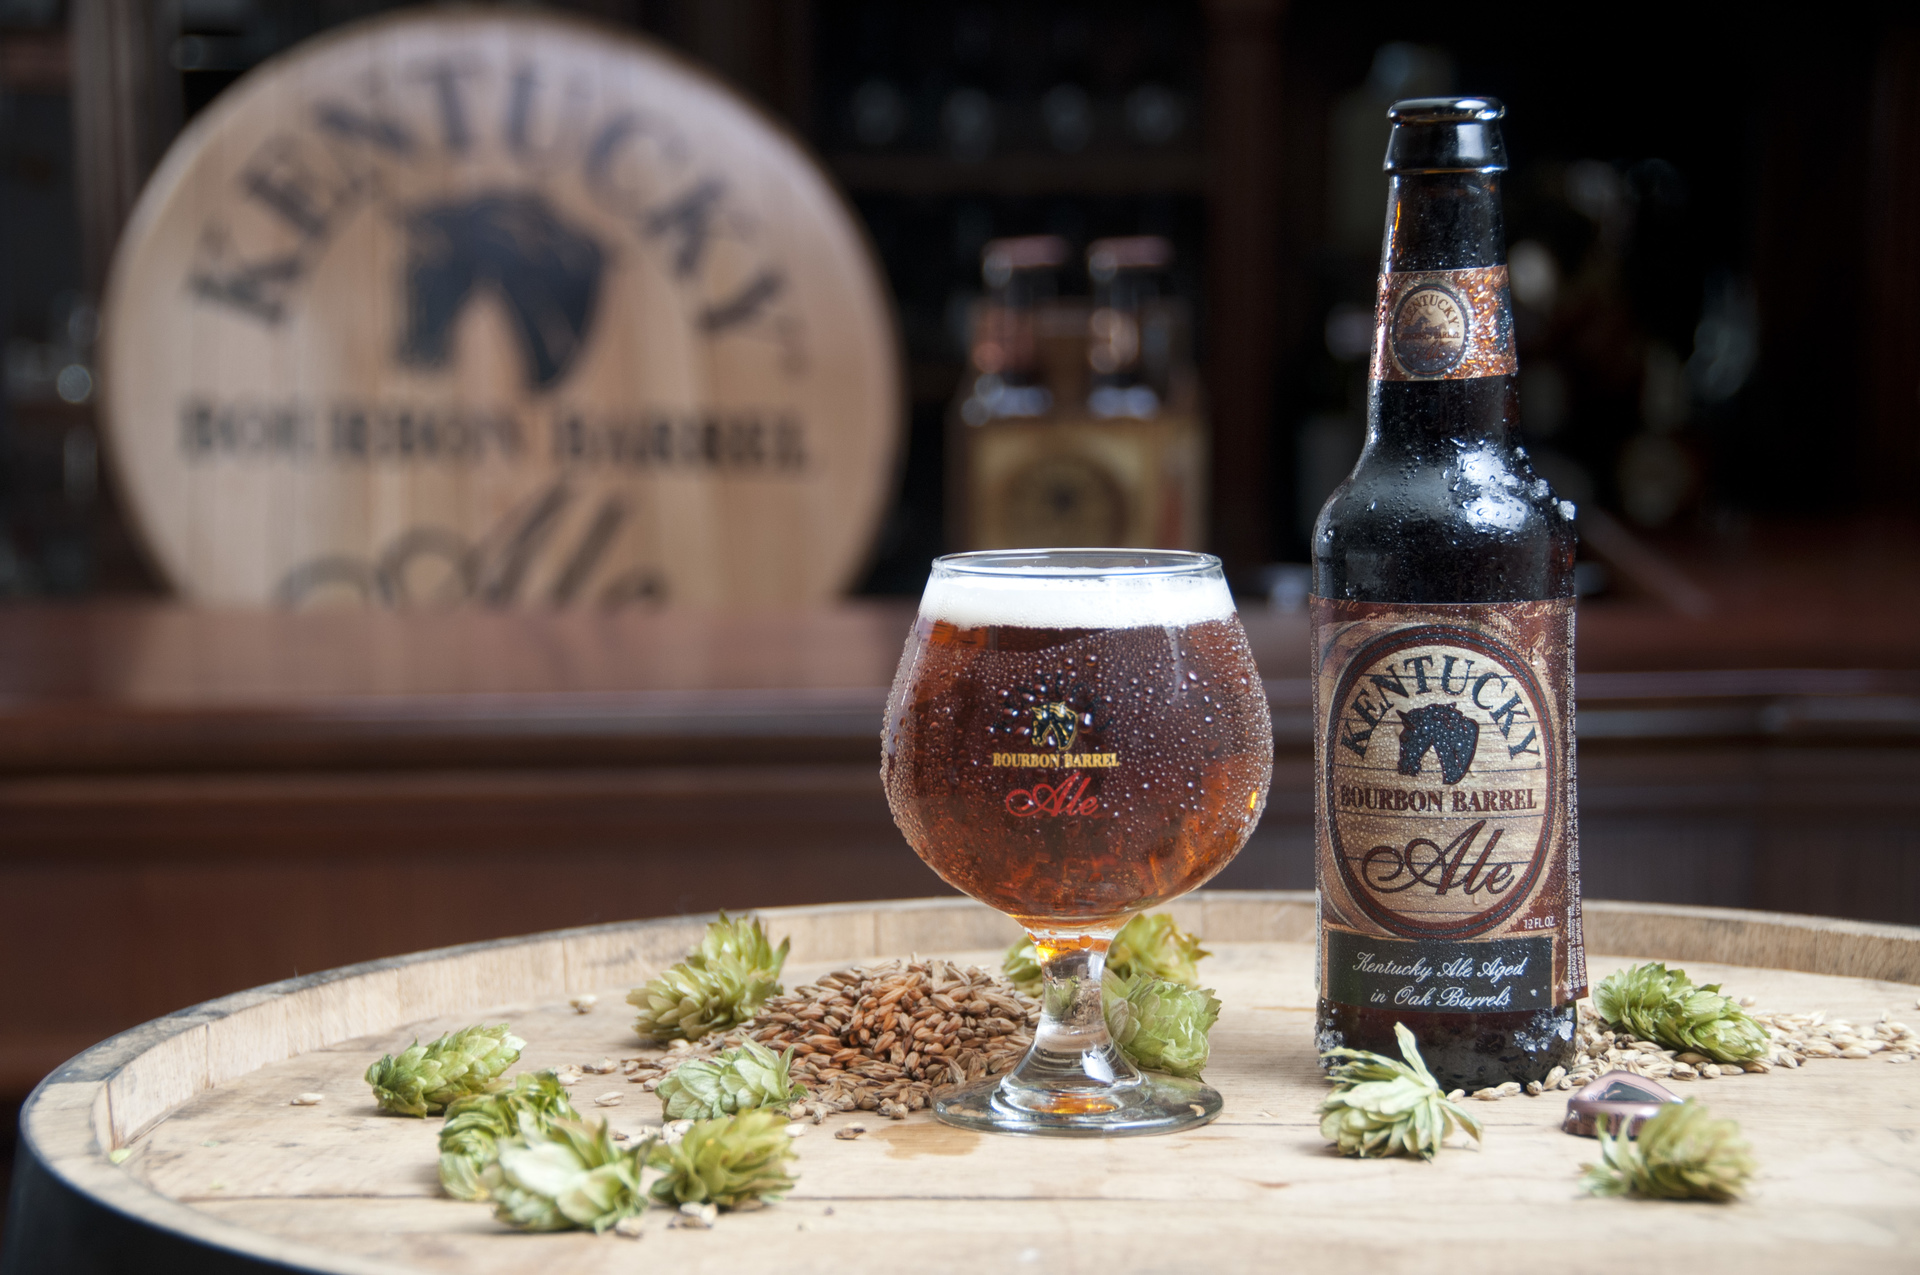 Try Our Bourbon Barrel Ale Infusion